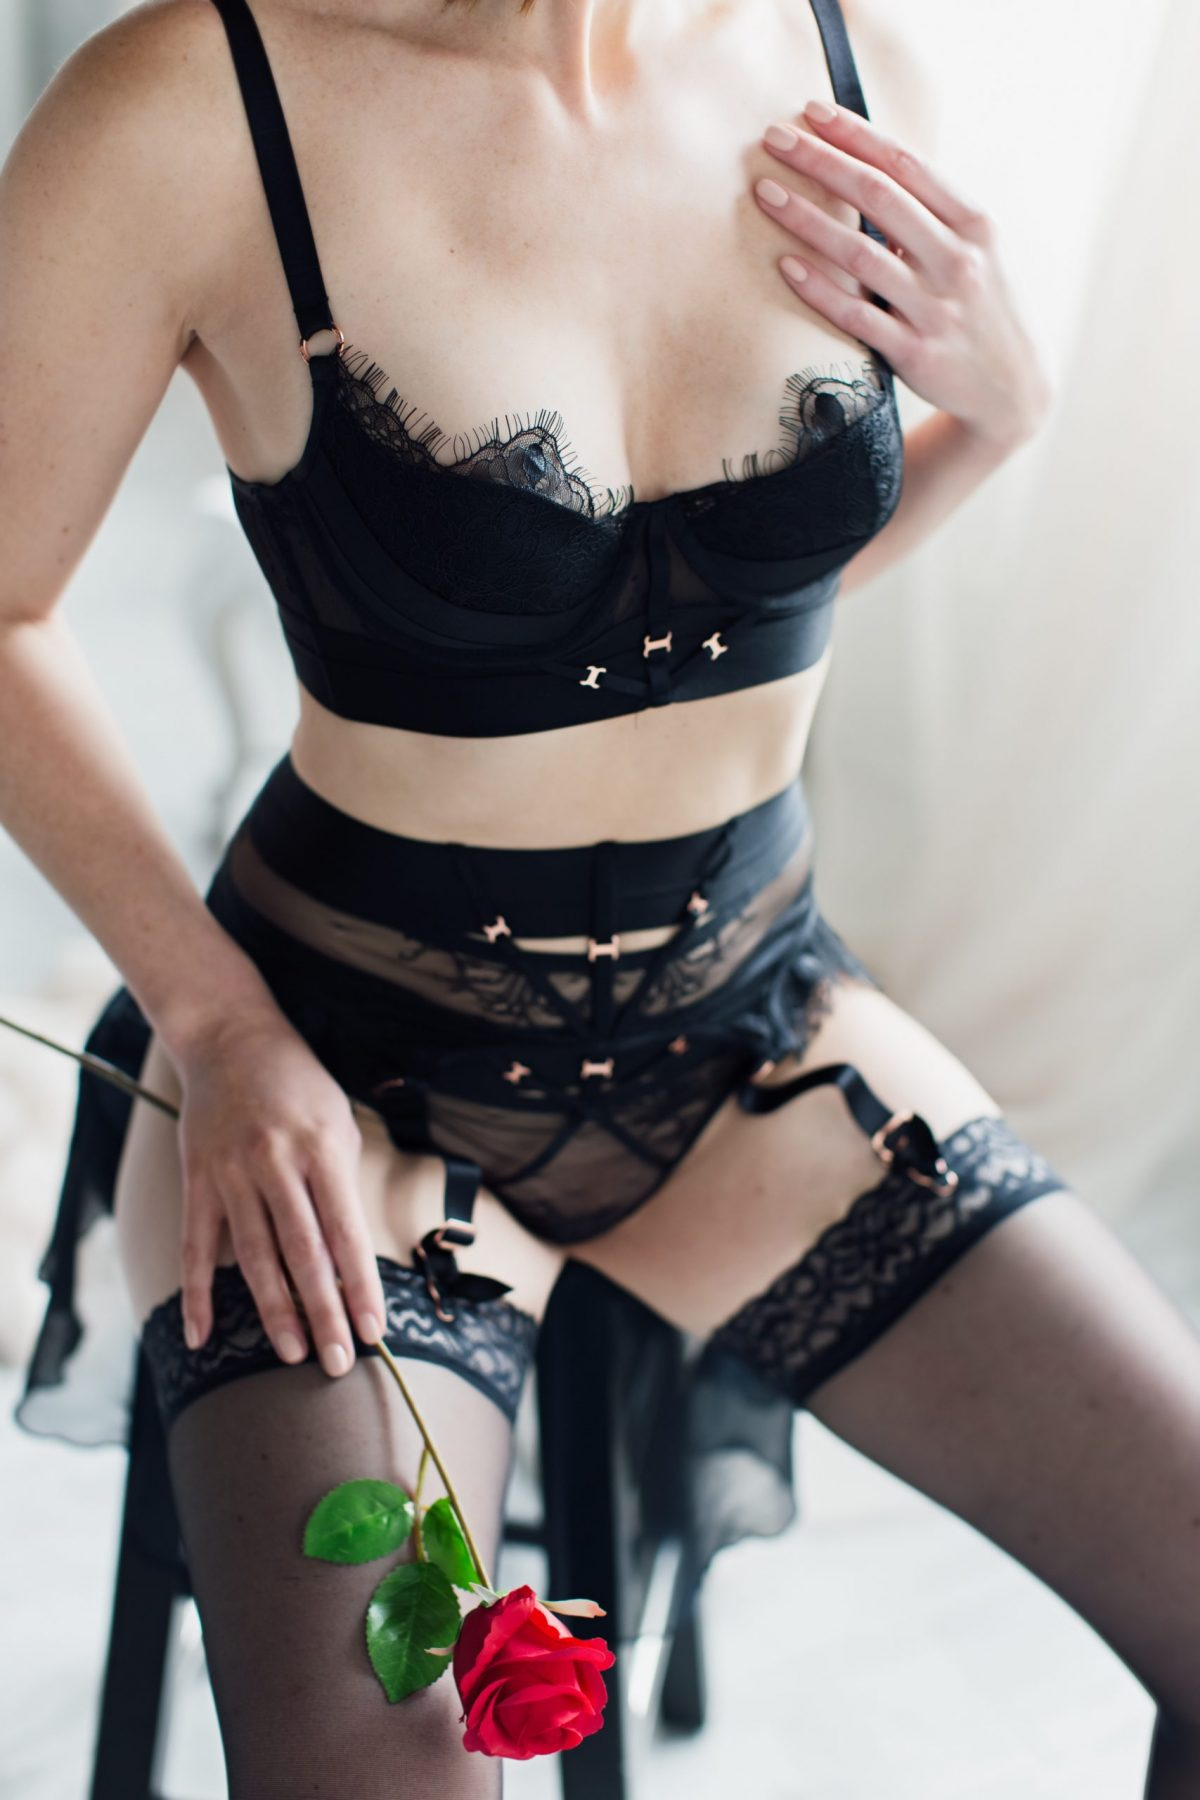 Toronto escorts companion upscale Danielle Interests Duo Non-smoking Age Mature Figure Slender Tall Breasts Natural Hair Redhead Ethnicity European Tattoos None Arrival New Photos